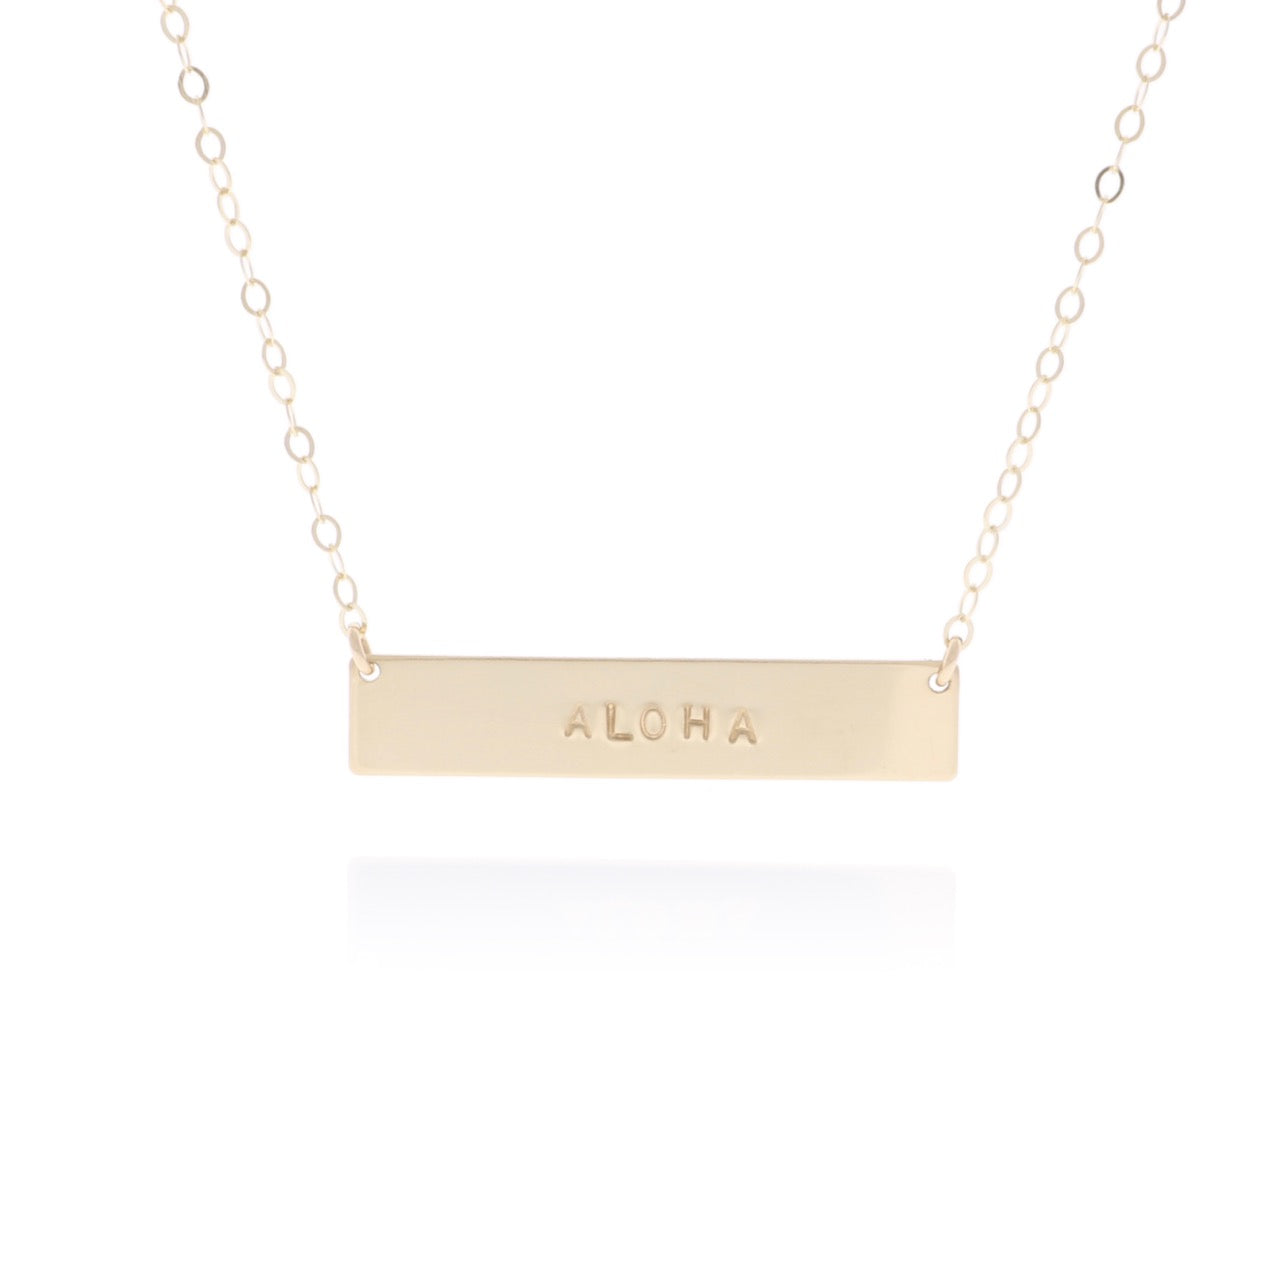 Personalized Bar Necklace in Gold